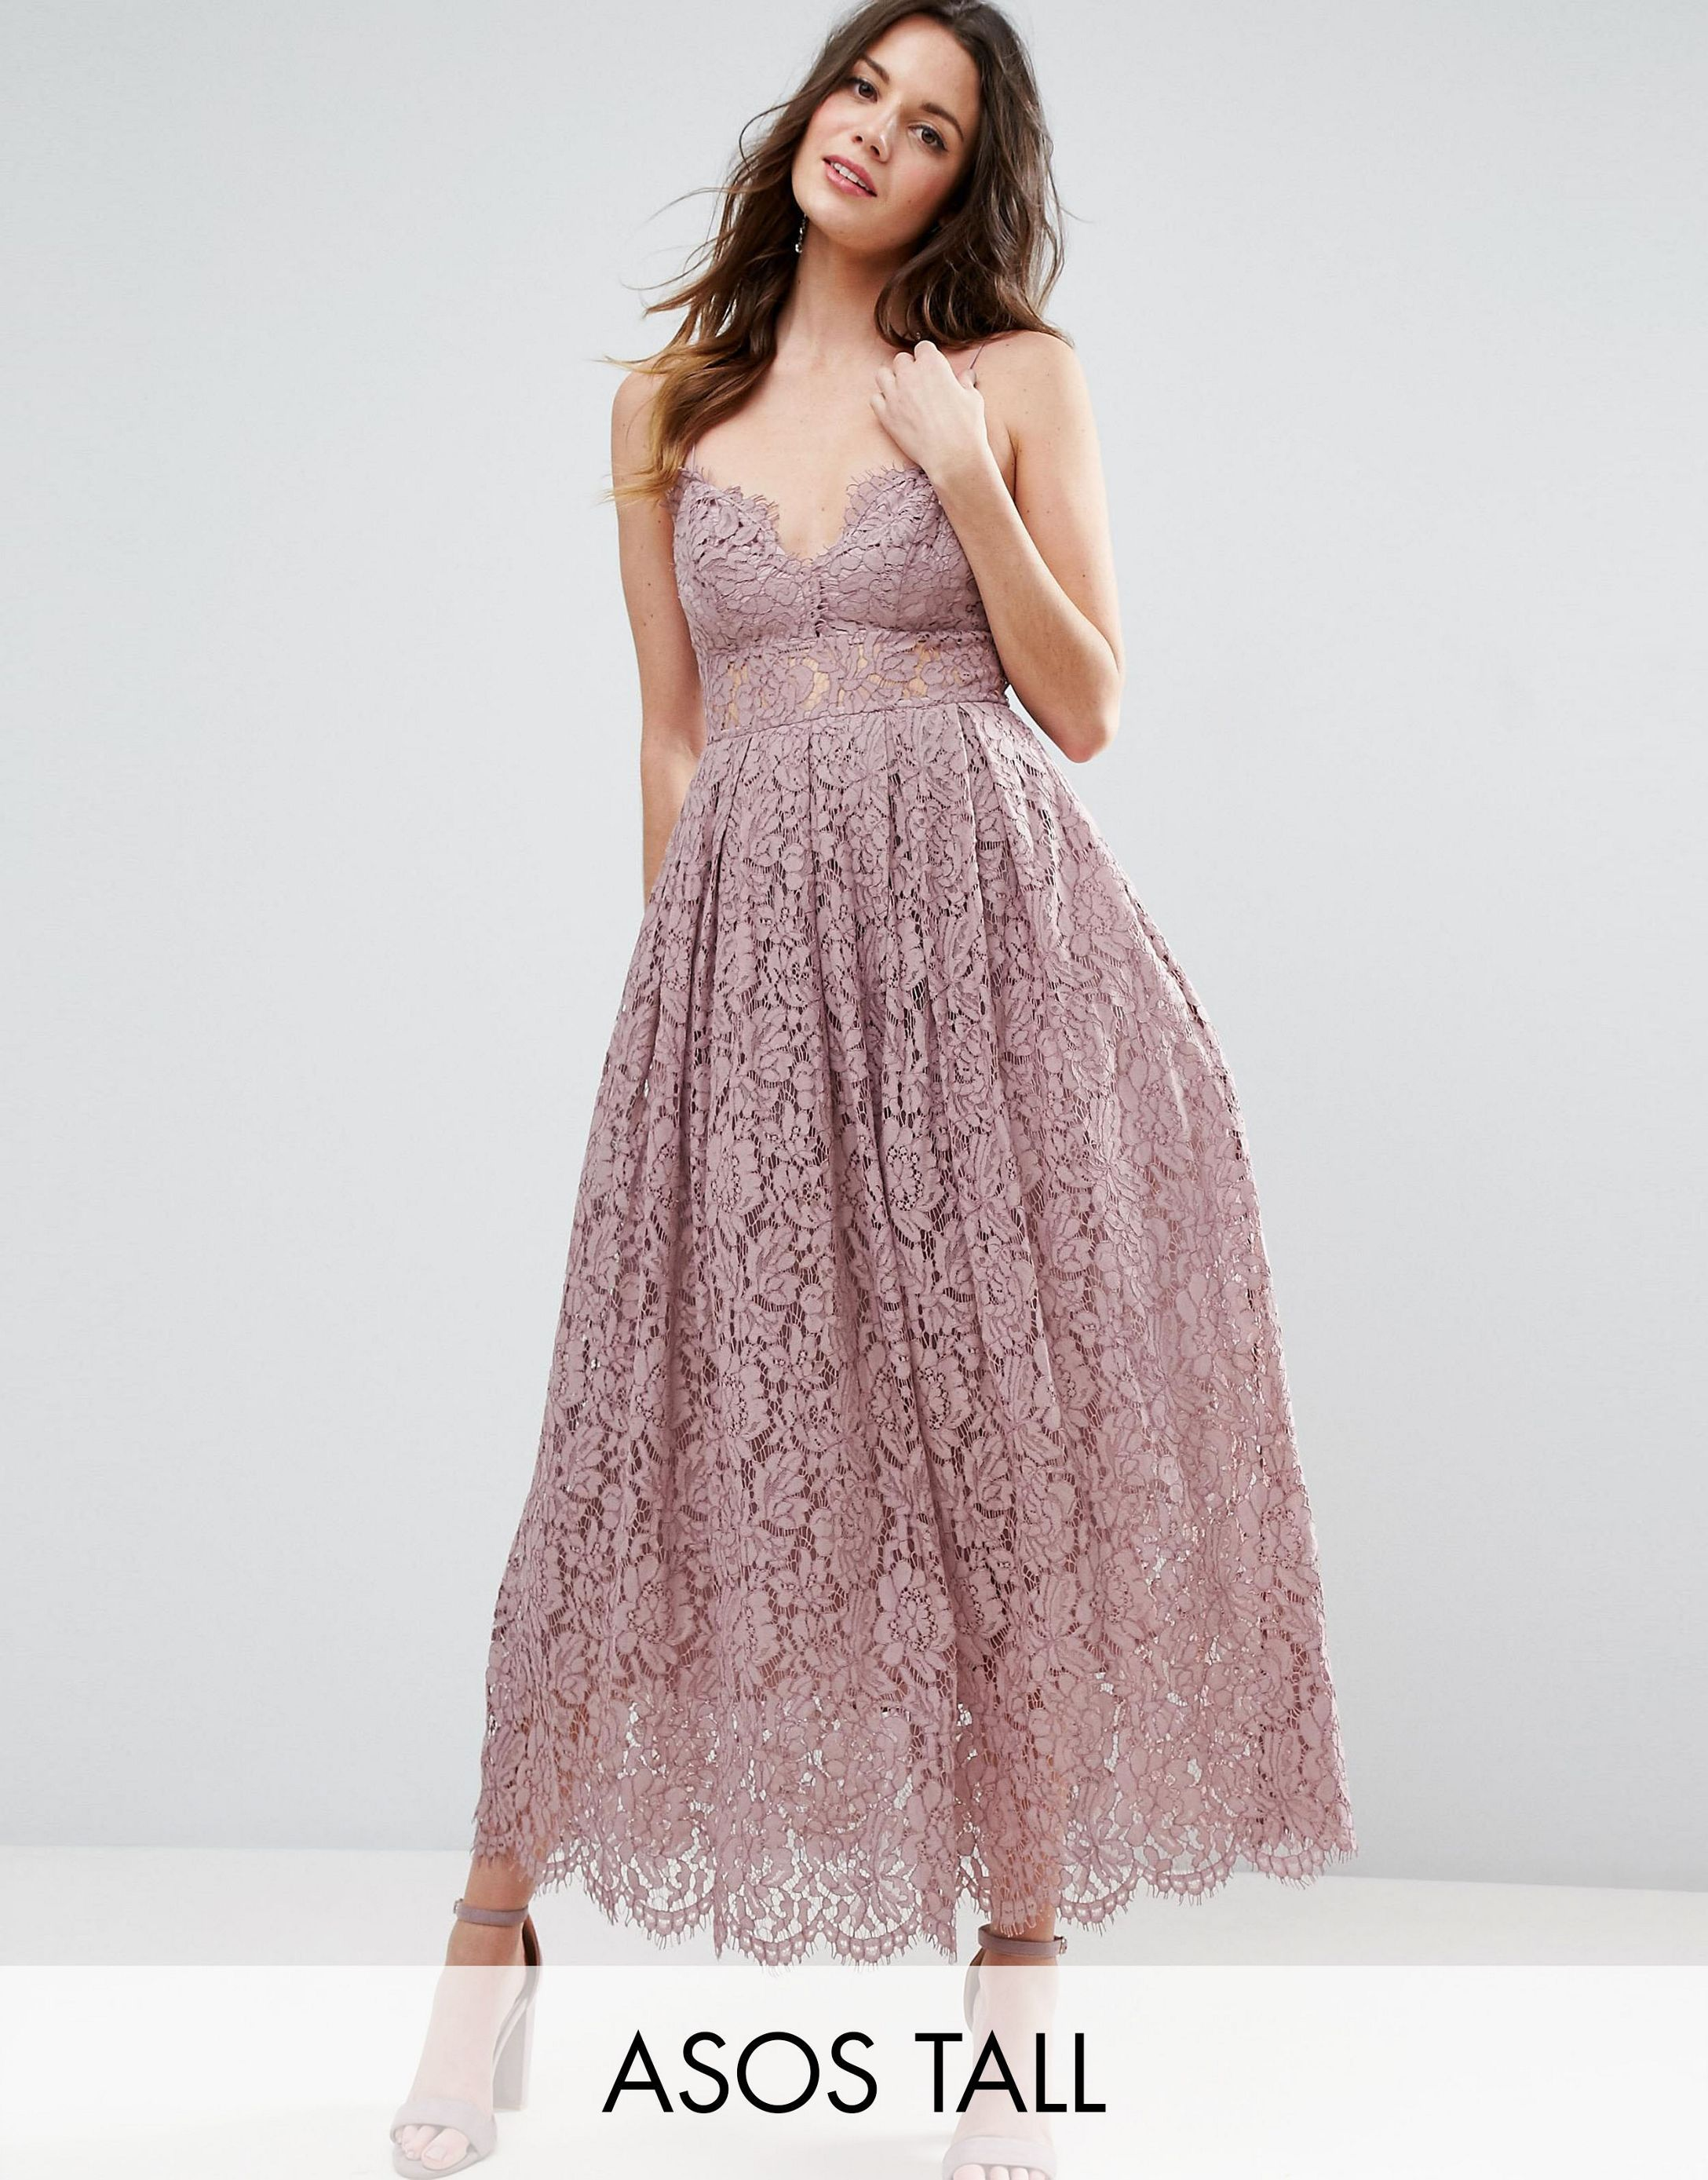 ★ASOS★ TALL Lace Cami ミッドi Prom ワンピース